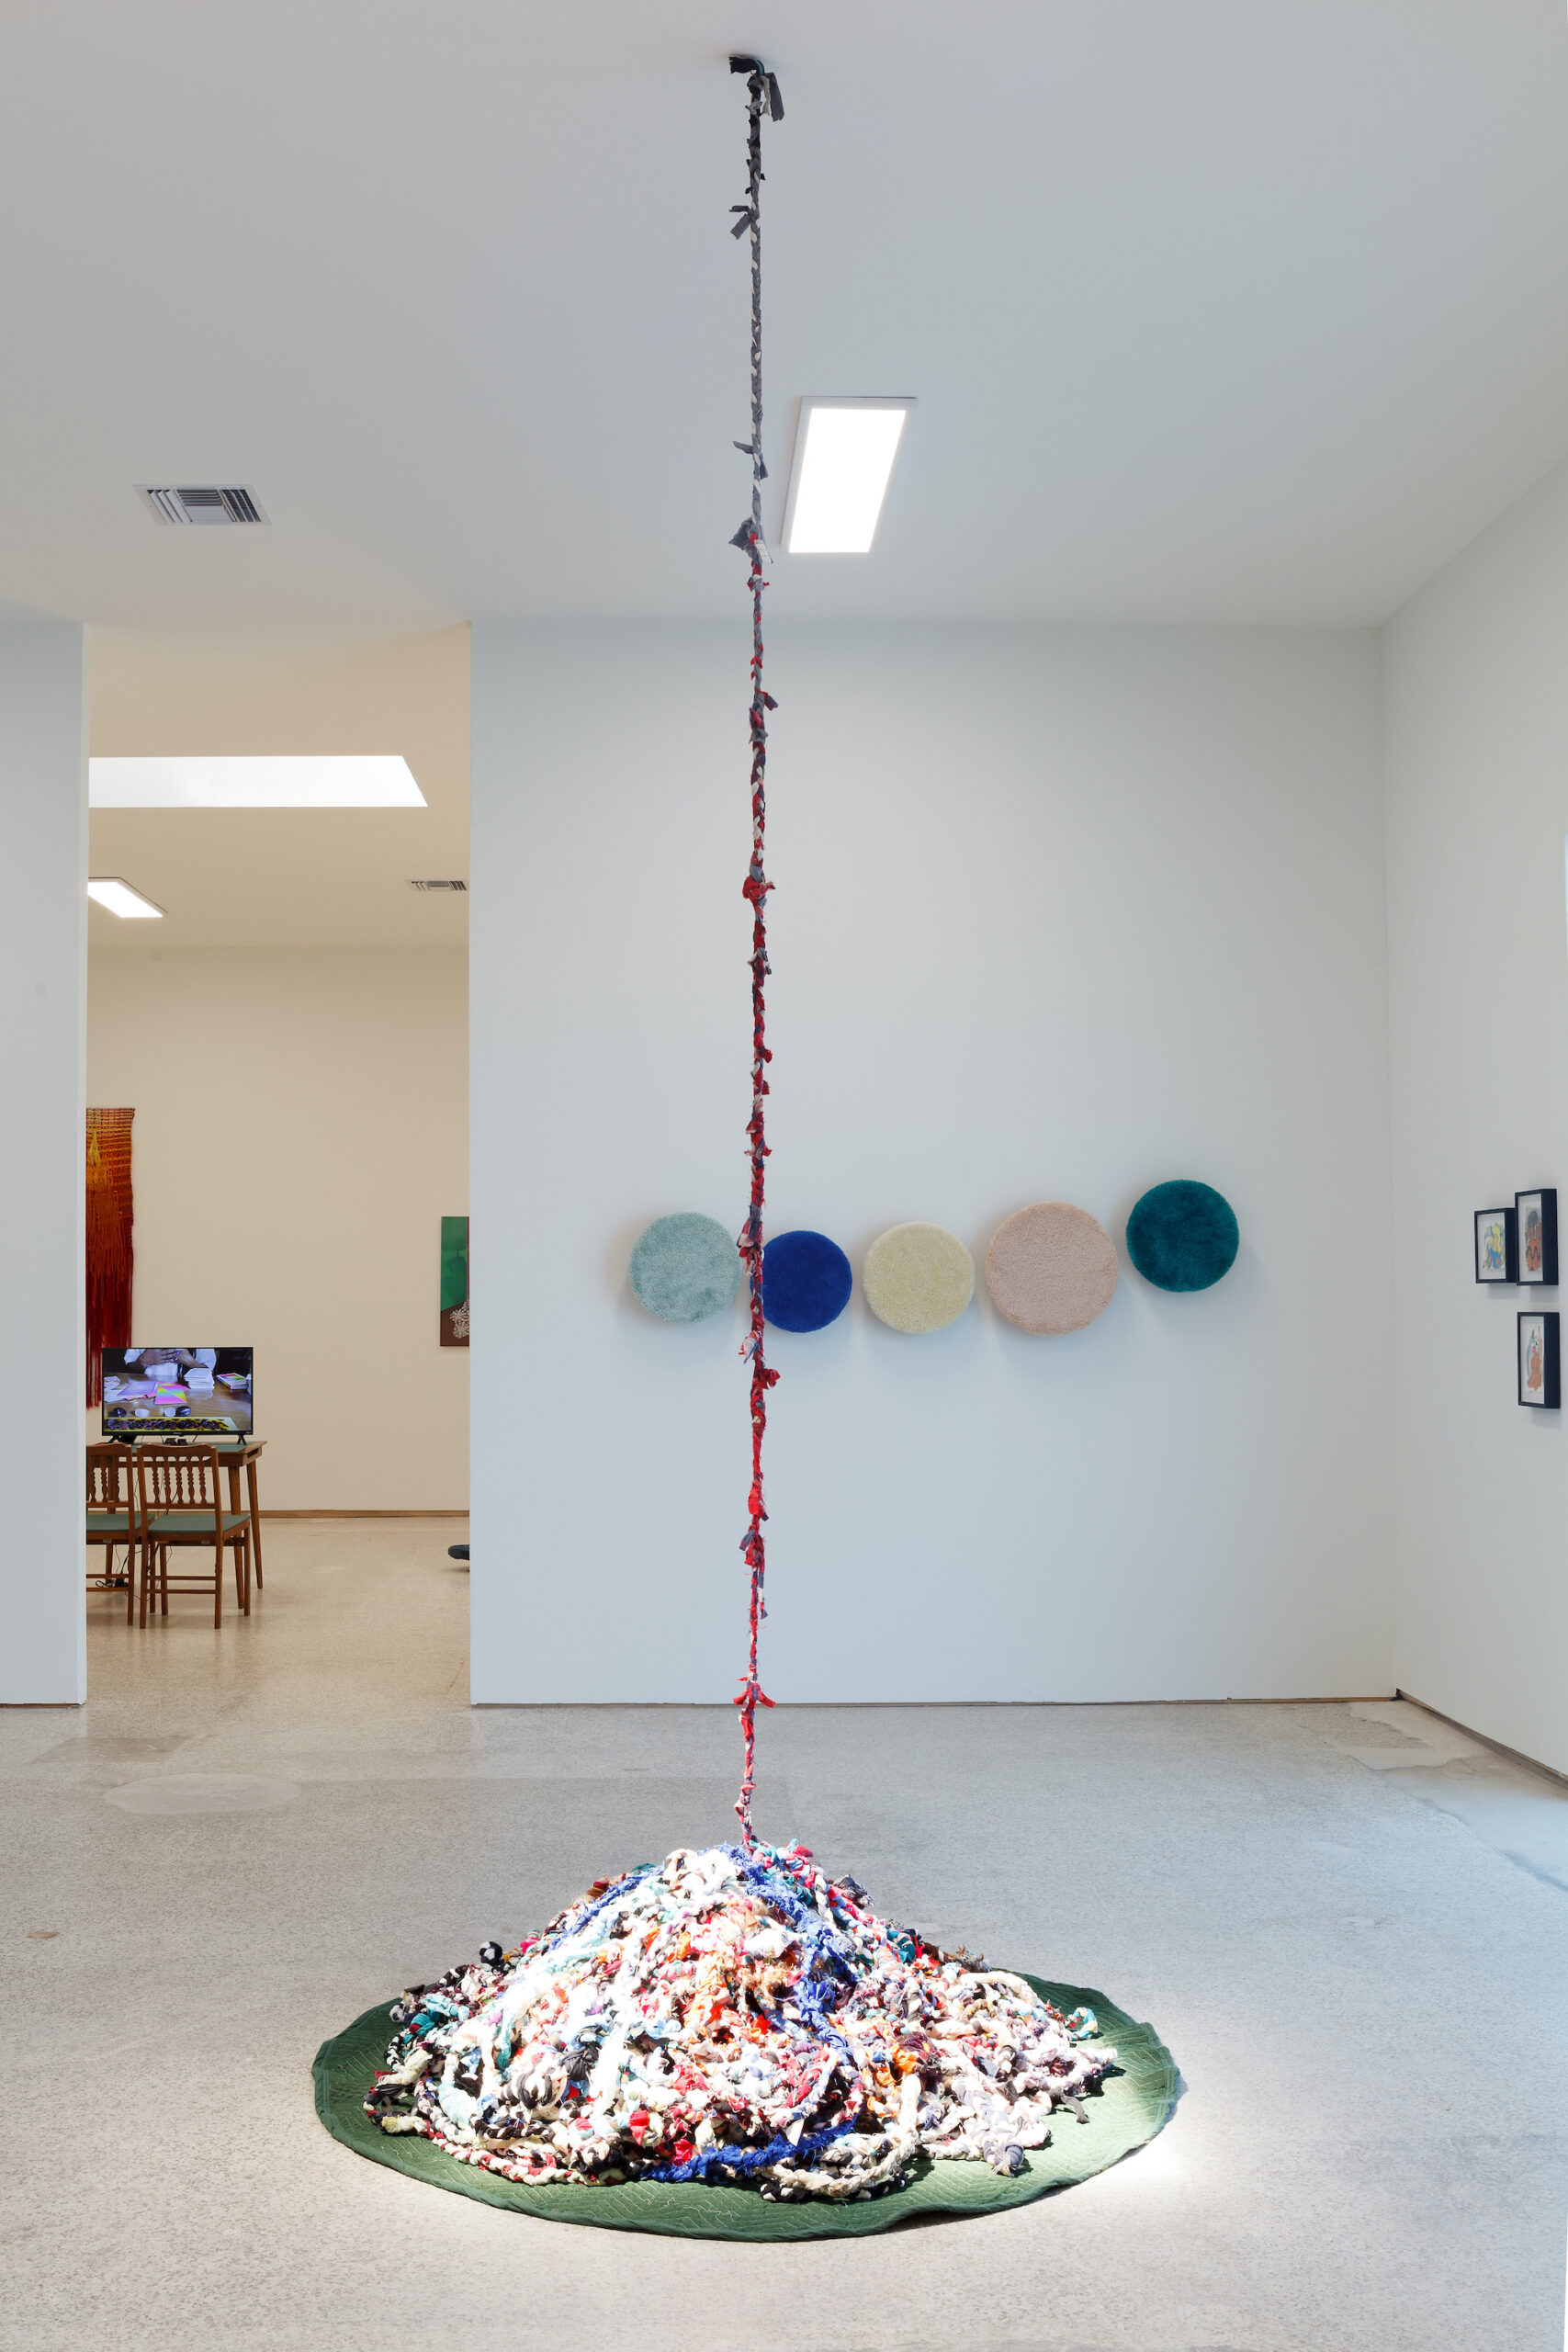 our constellations: astral embraces and tactual consciousness (Installation view a), 2021, Emerson Dorsch, Miami FL